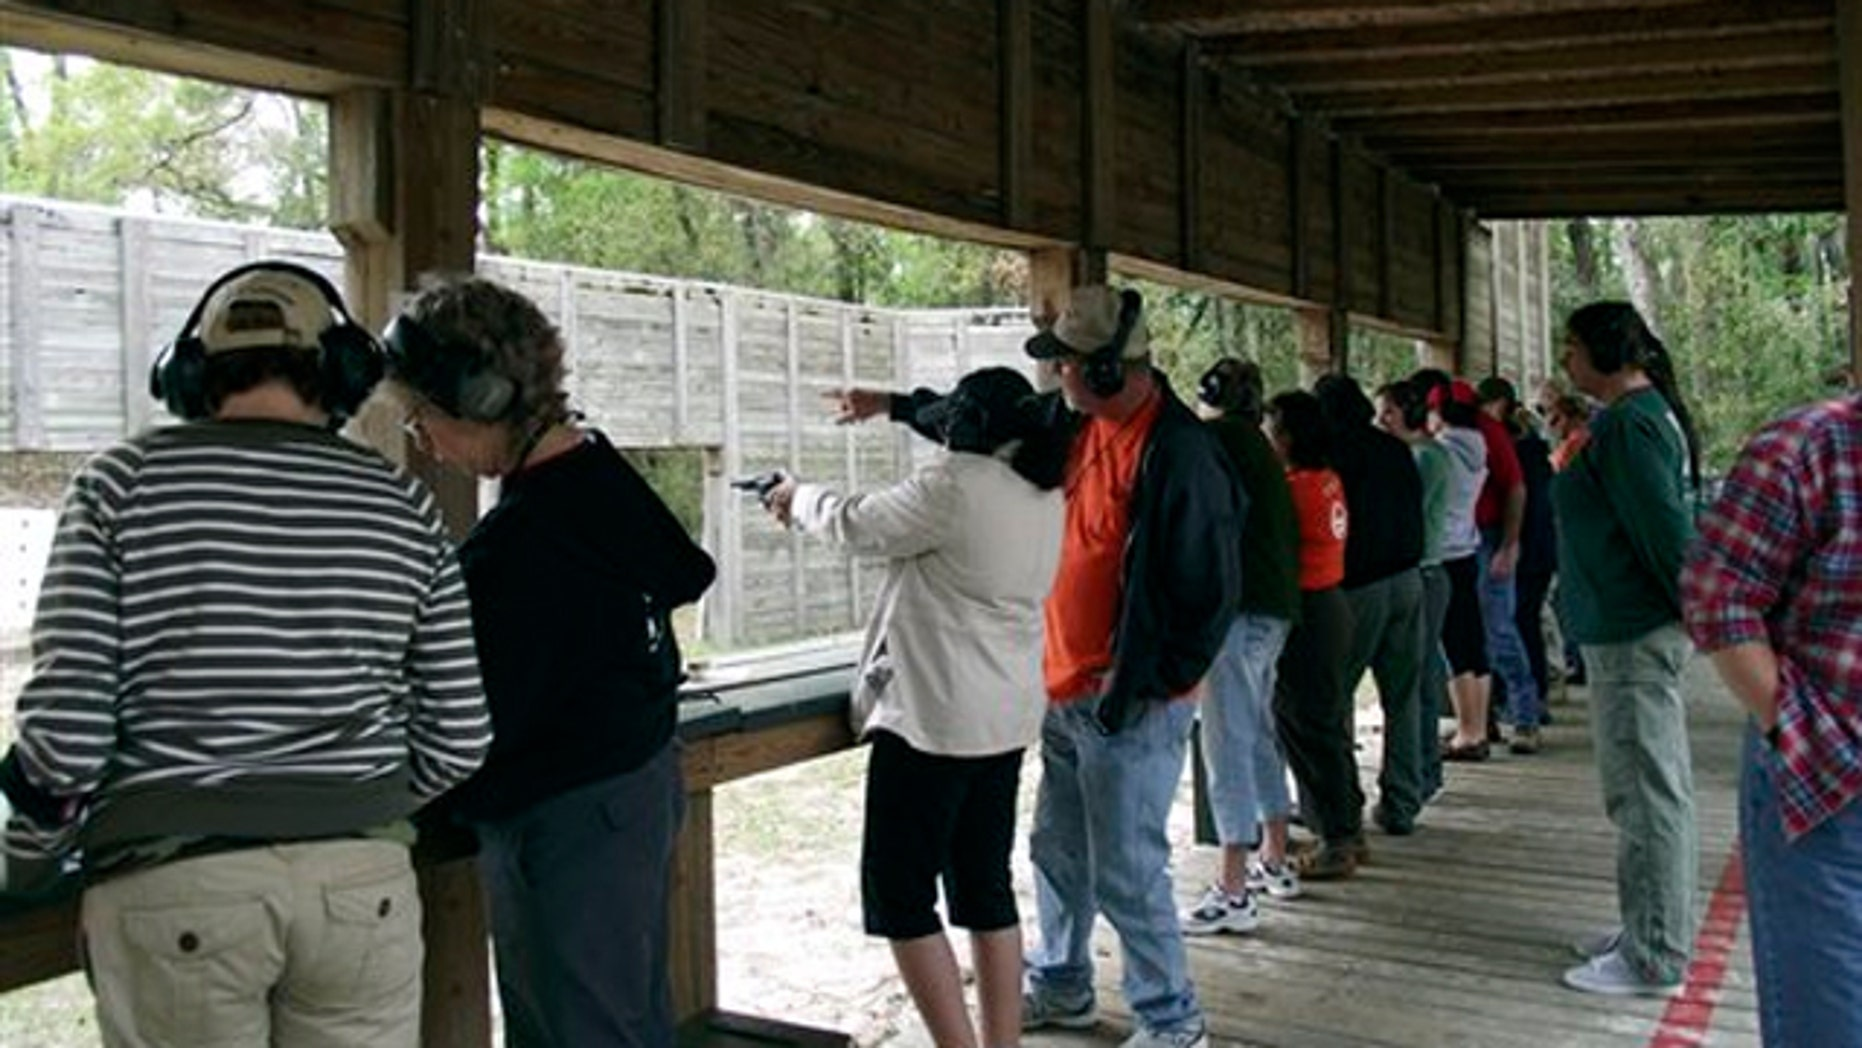 """March, 2012:  The Florida Fish and Wildlife Conservation Commission shows participants in a """"Becoming an Outdoors-Woman"""" workshop learning handgun shooting skills at the Ocala Conservation Center and Youth Camp in Ocala National Forest, Florida."""